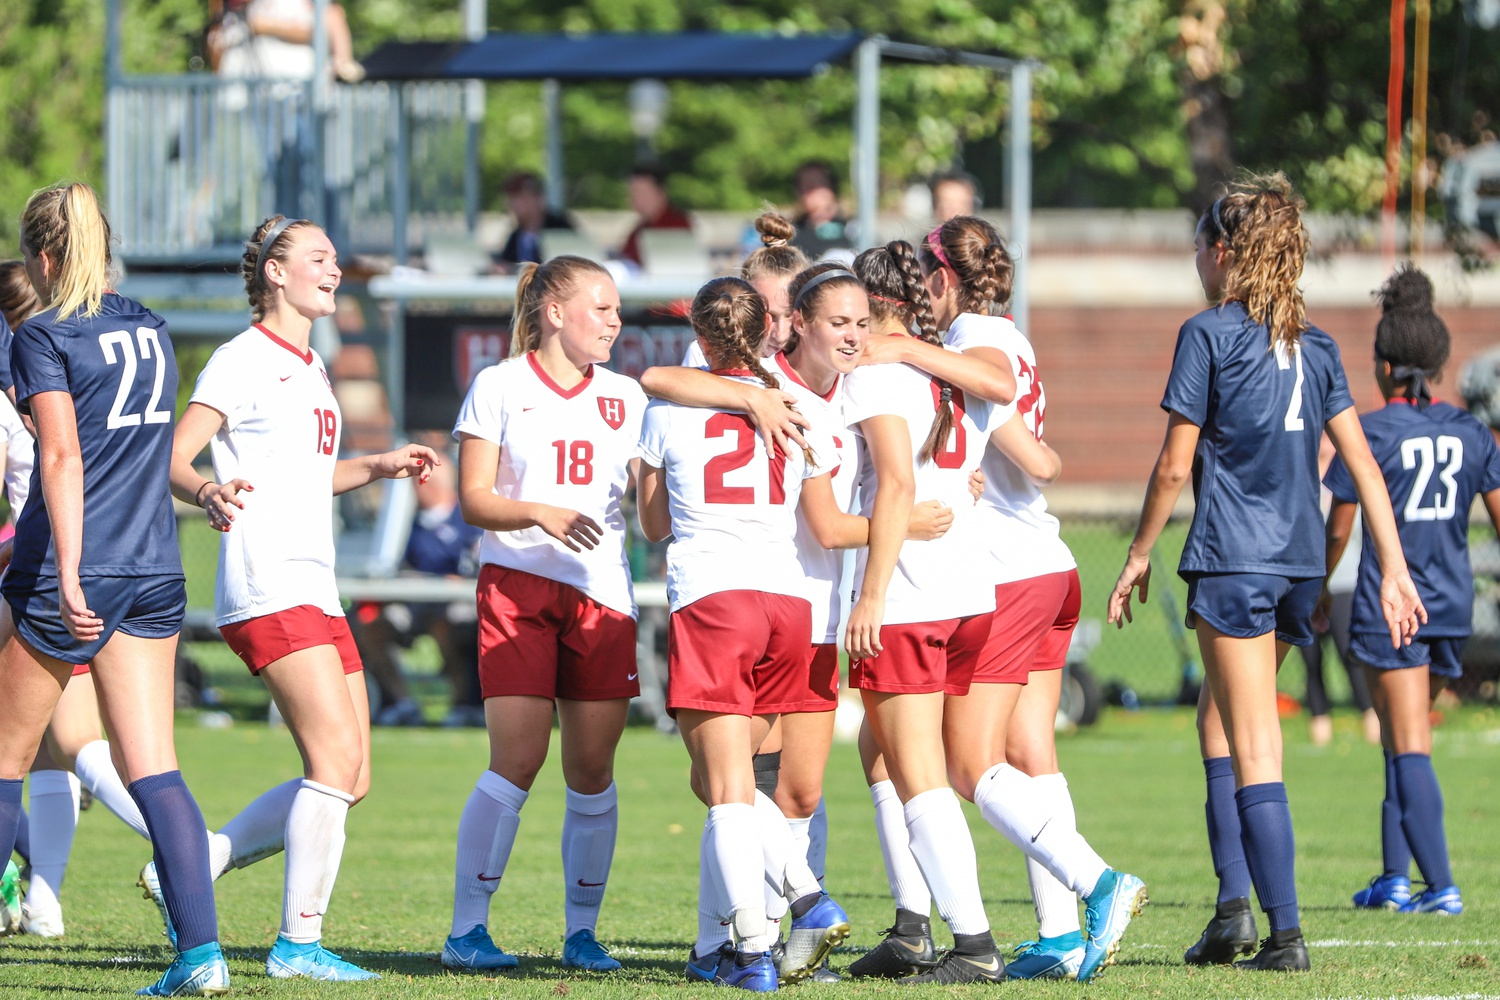 Harvard celebrates its decisive goal in a 1-0 win over Penn last season. The Crimson program will look to do more celebrating as it returns most of its 2019 core and will get a boost from a program-best recruiting class.